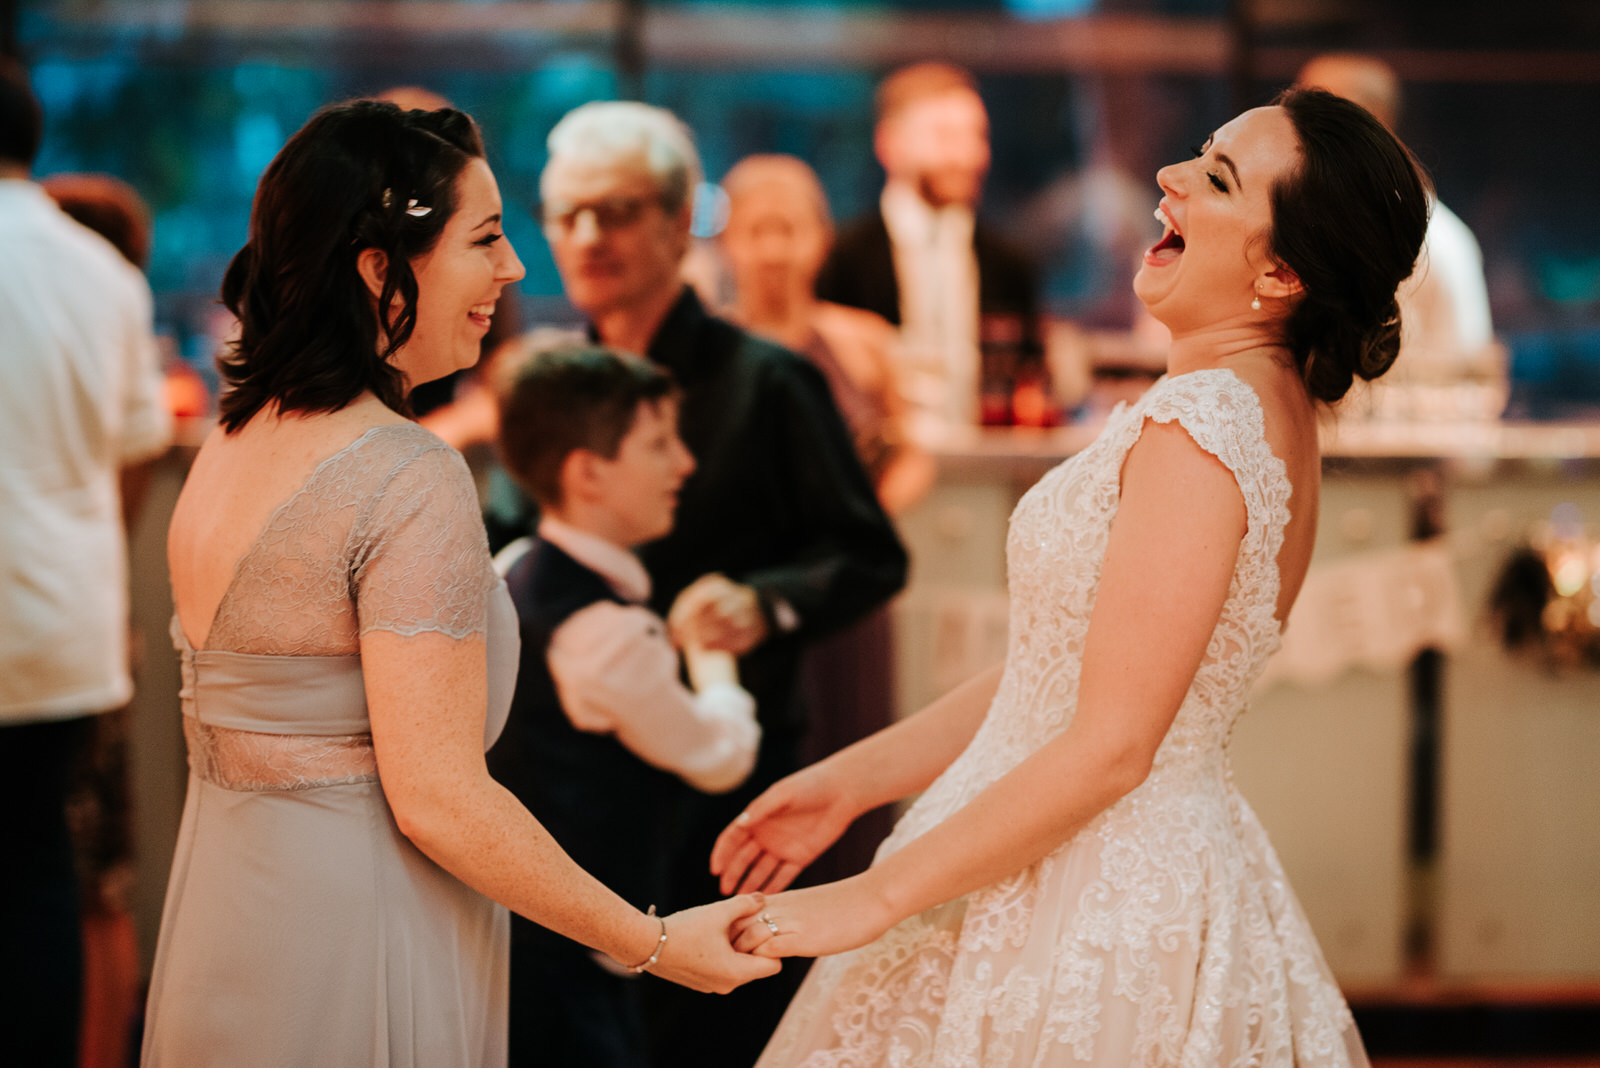 Bride and close friend share a laugh while dancing